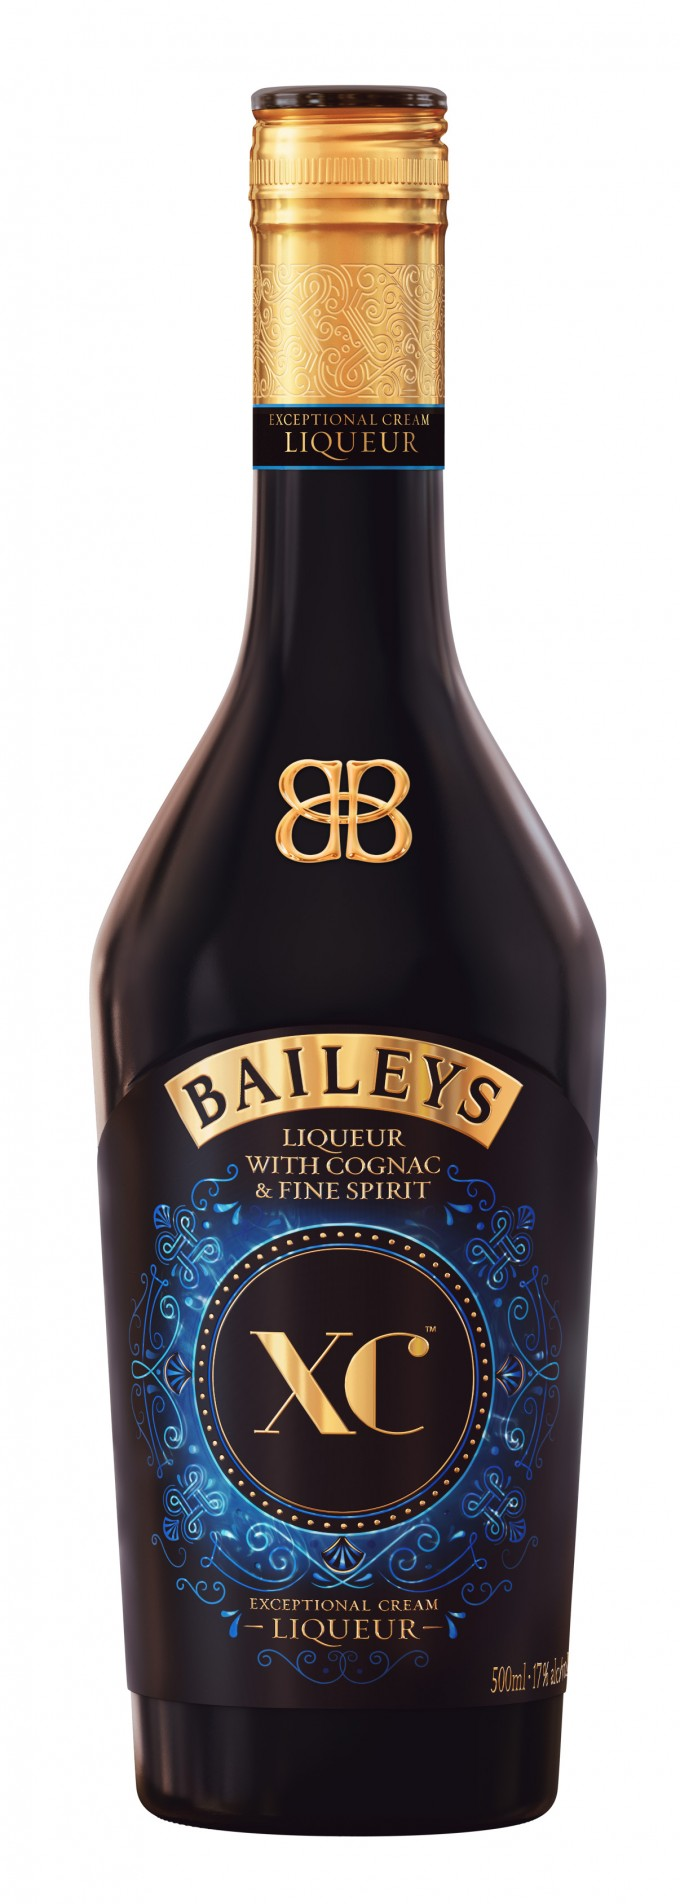 New Baileys XC makes duty-free exclusive debut with Heinemann